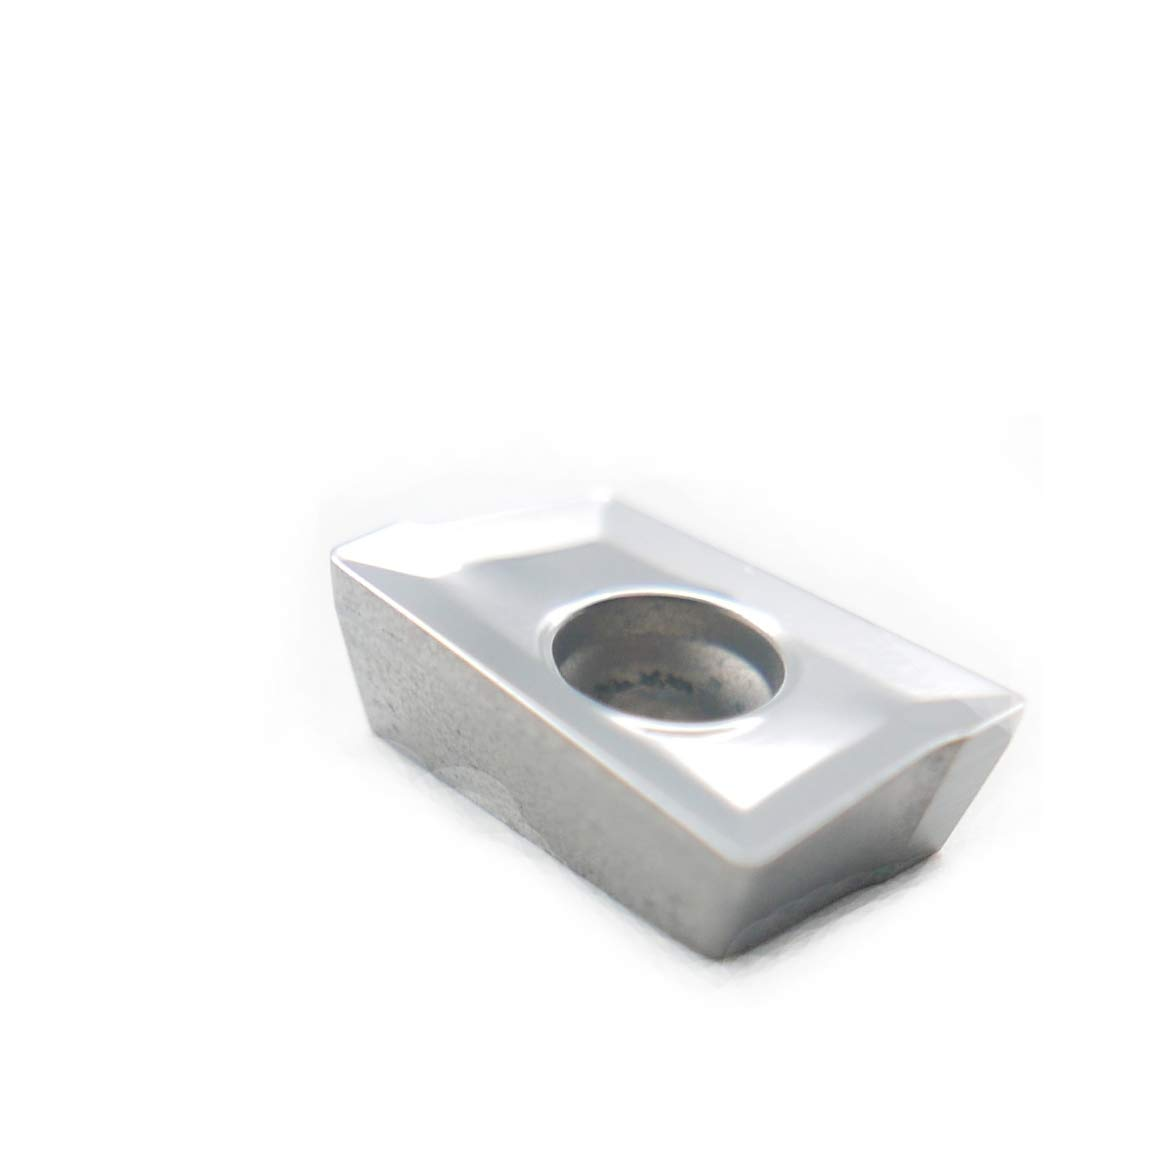 FomaSP Carbide Inserts for Aluminum APKT1035PDFR for Turning Cutting Tools 10 PCS